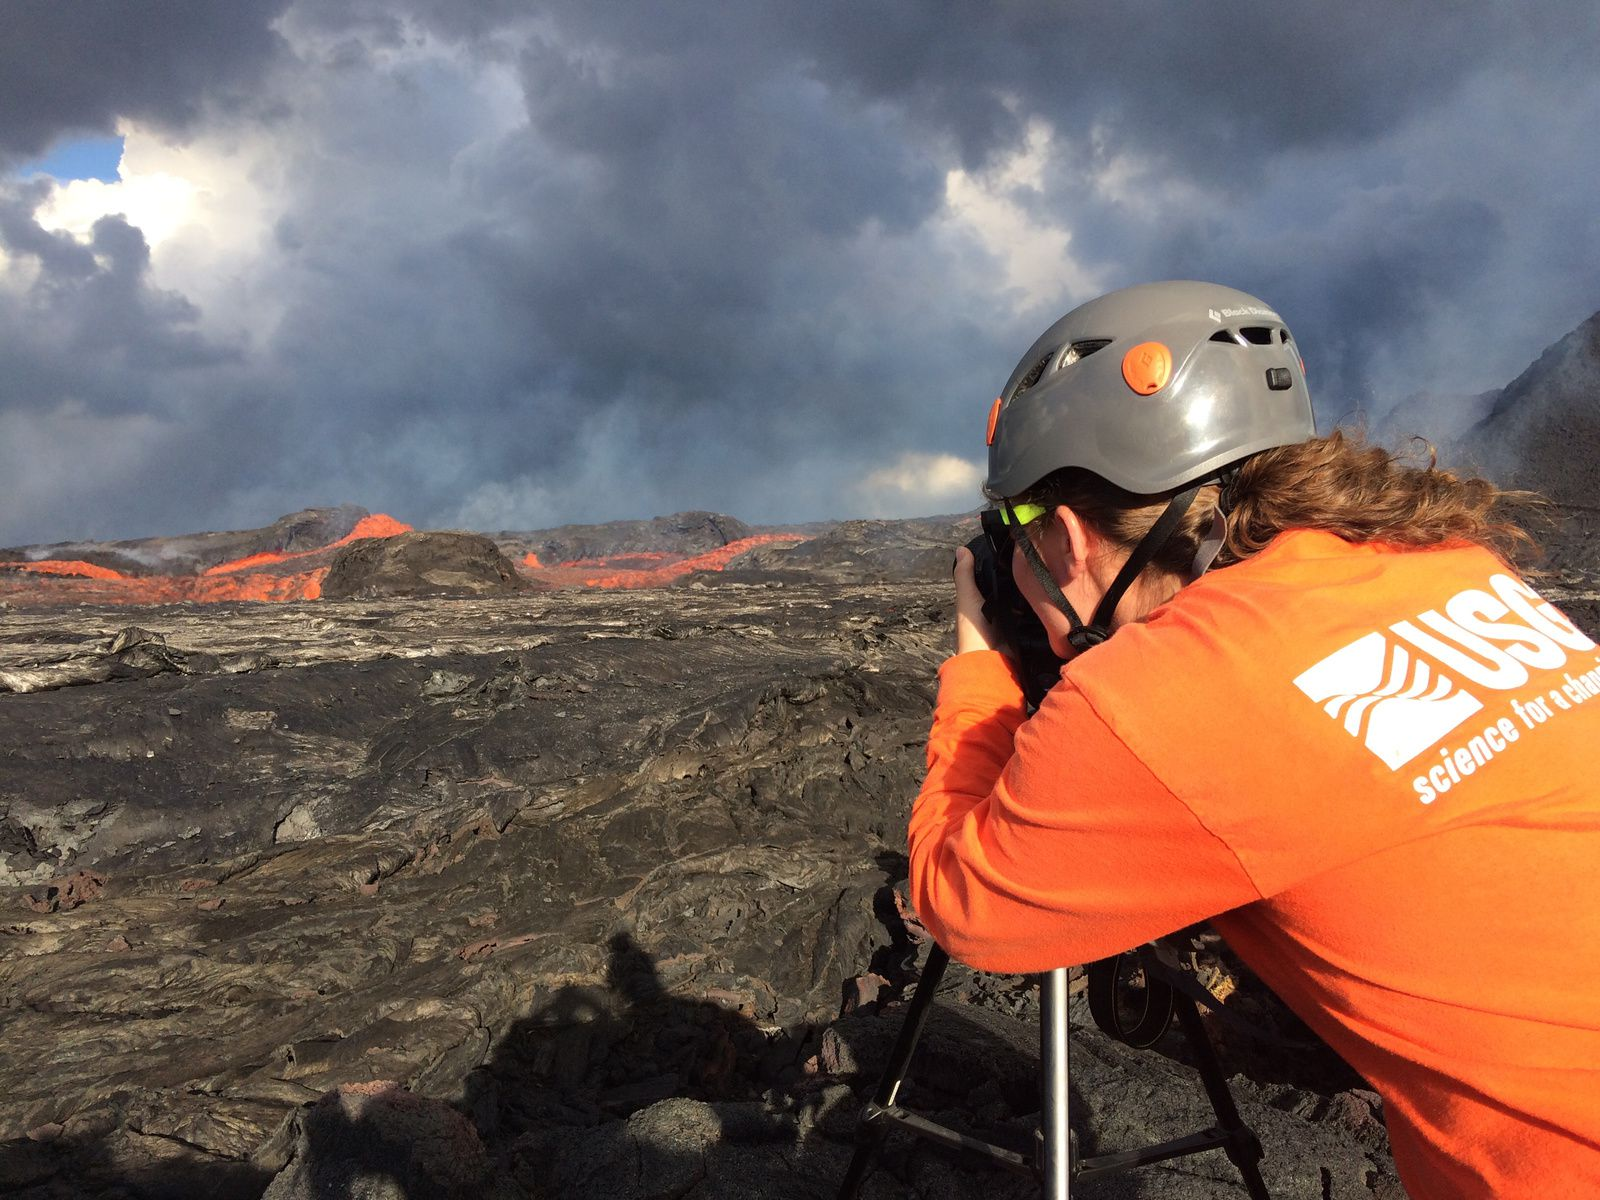 Kilauea East Rift Zone - Controls at the exit of the cone on fissure 8 by an USGS volcanologist - the speed of the flow is measured at 30 km / h.